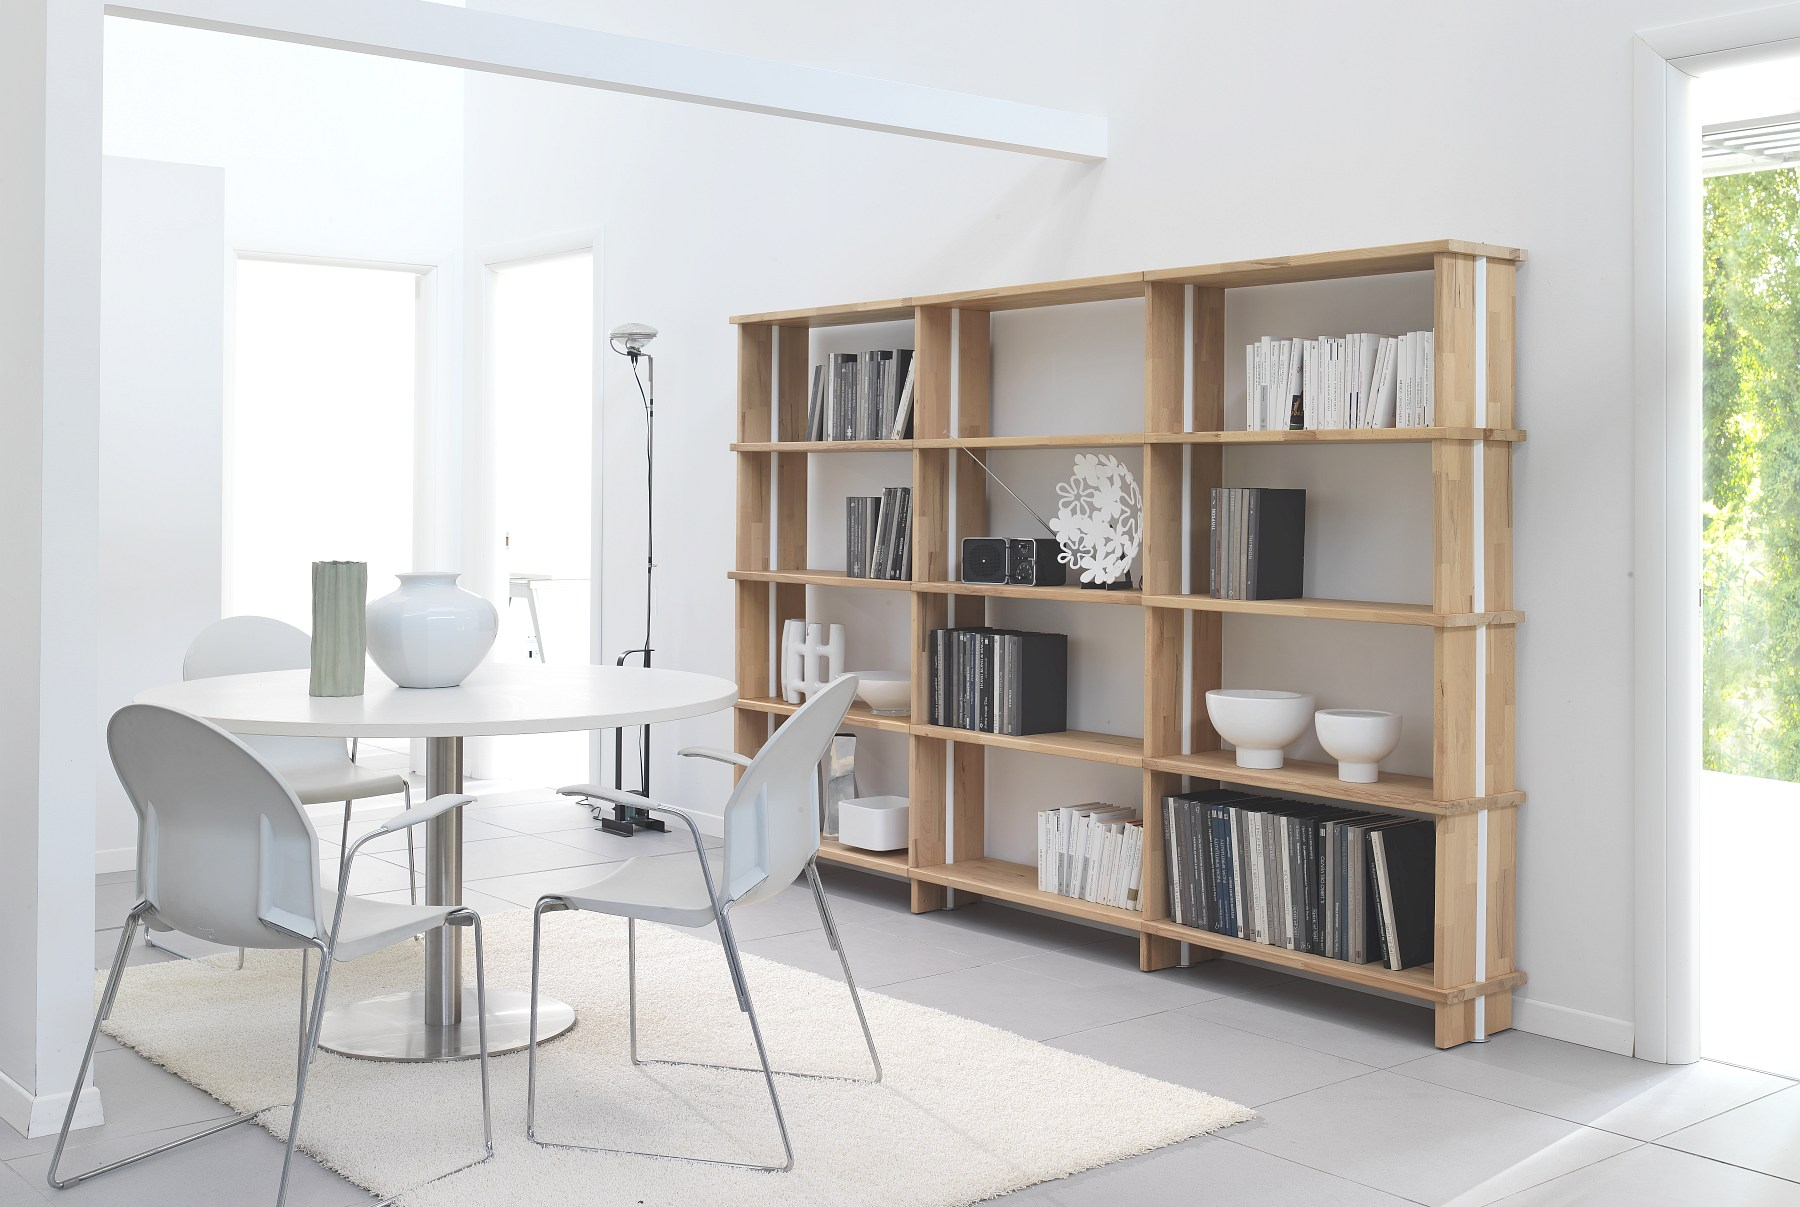 Nikka Woody Modular Bookcase By Piarotto Mobilie Snc